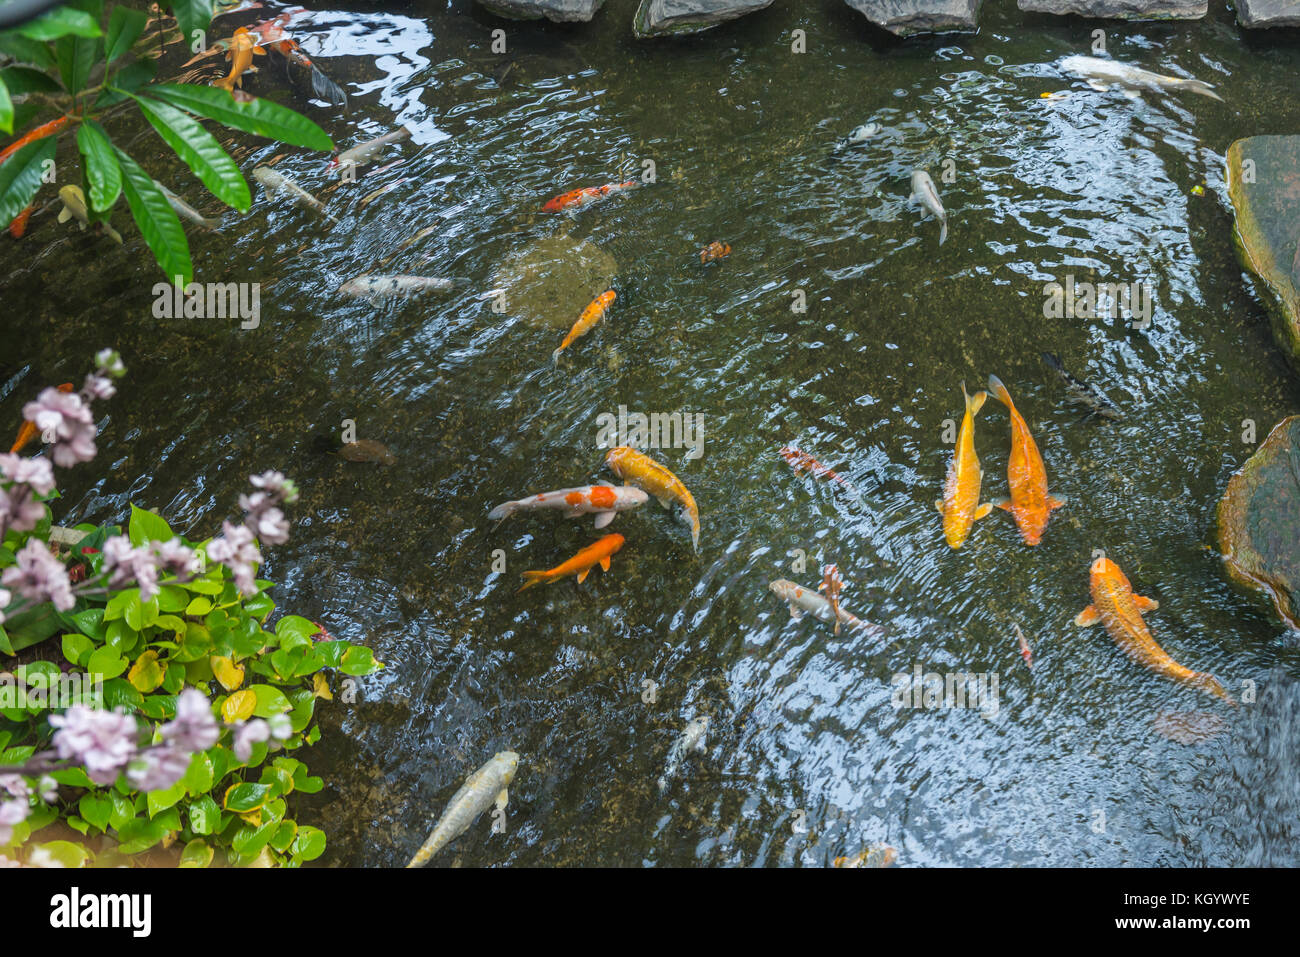 Koi fish pond lake water japan stock photos koi fish for Koi fish in pool